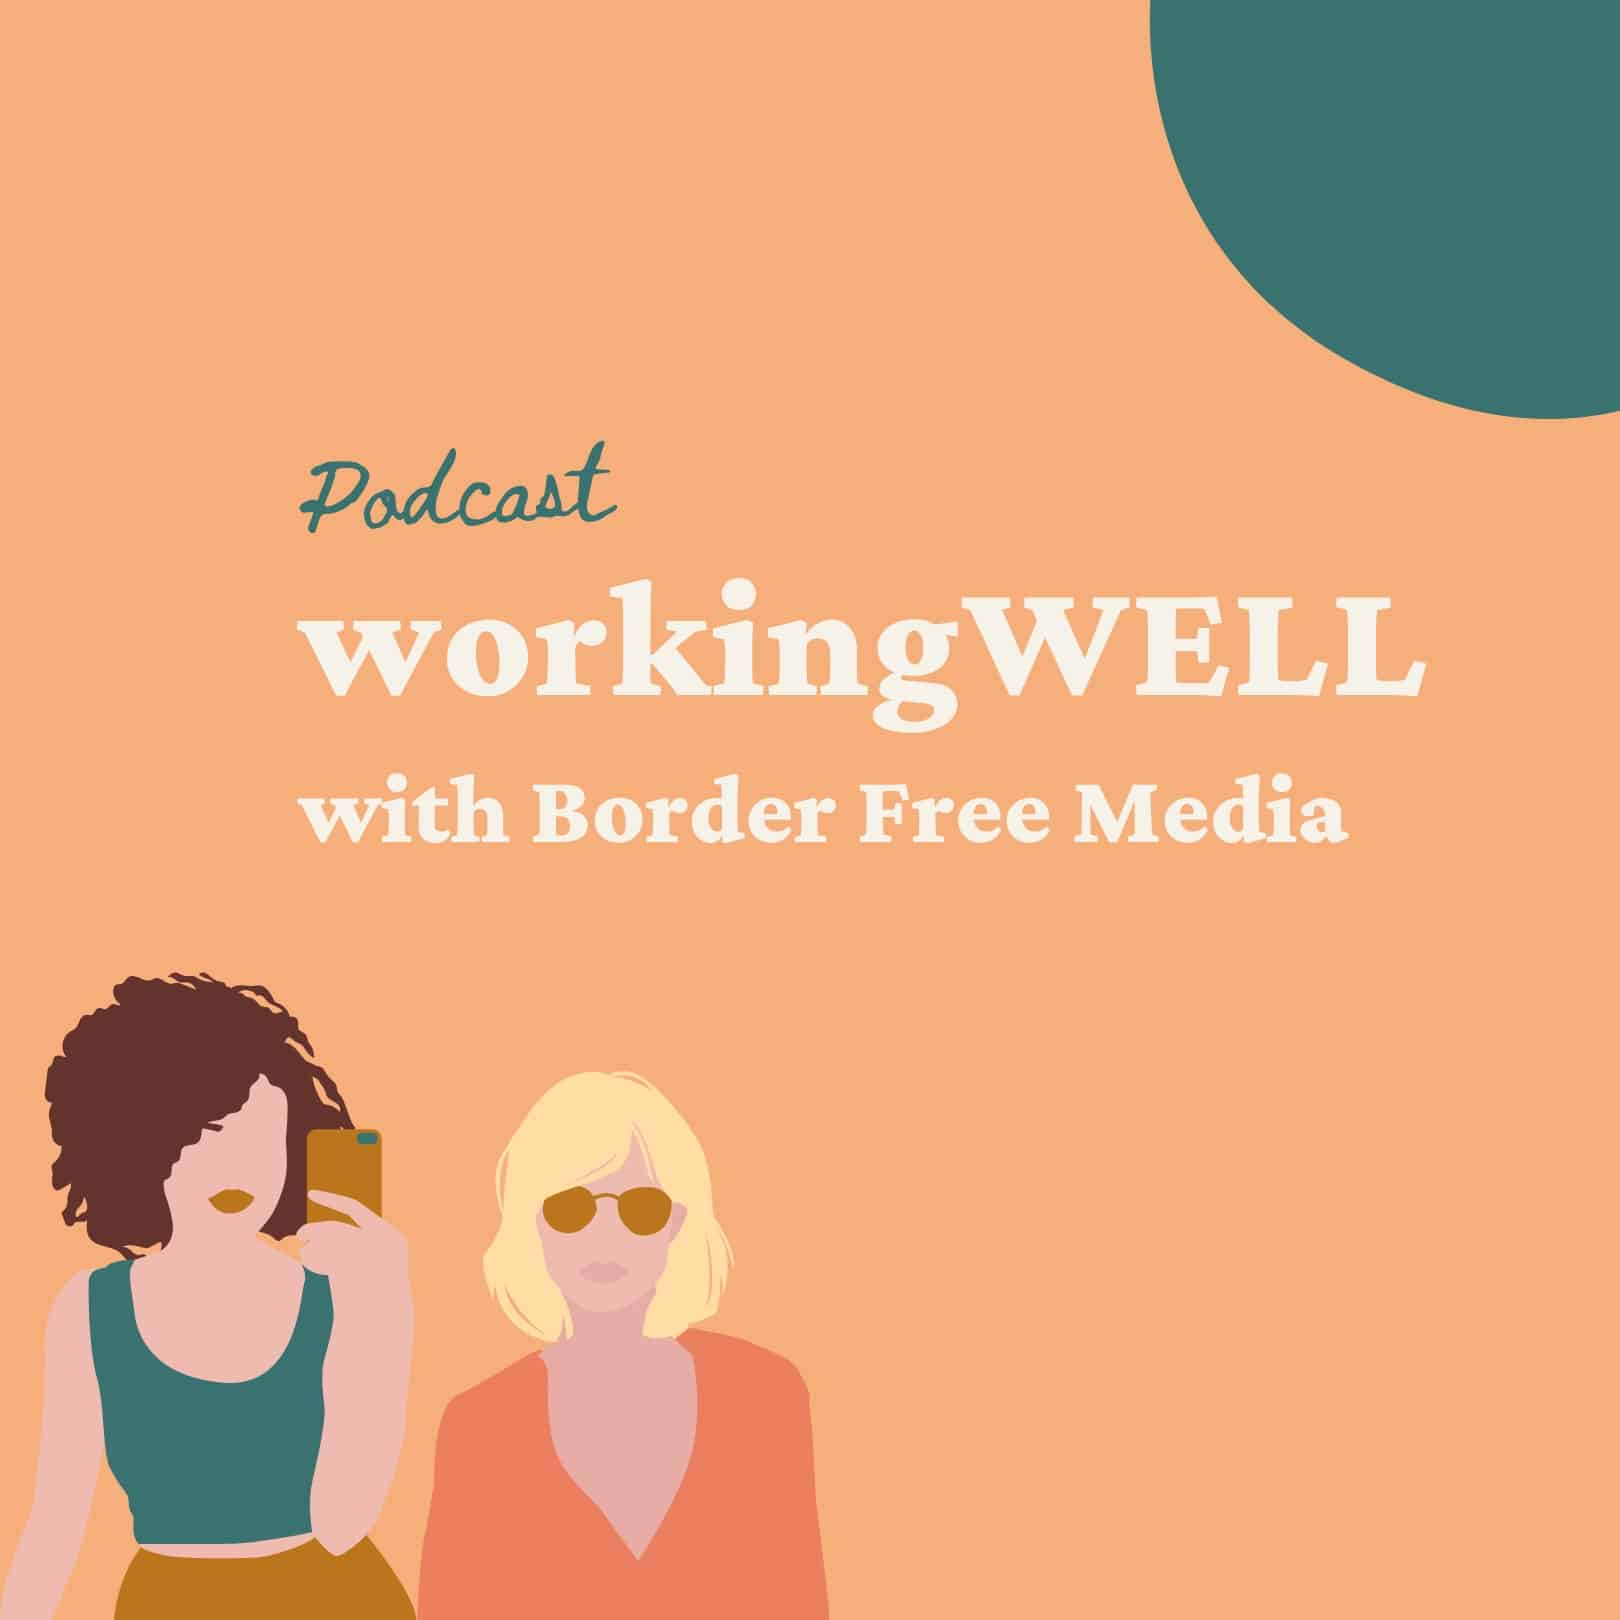 podcast of about workingWELL with blonde girl in pink shirt and brunette girl in green shirt